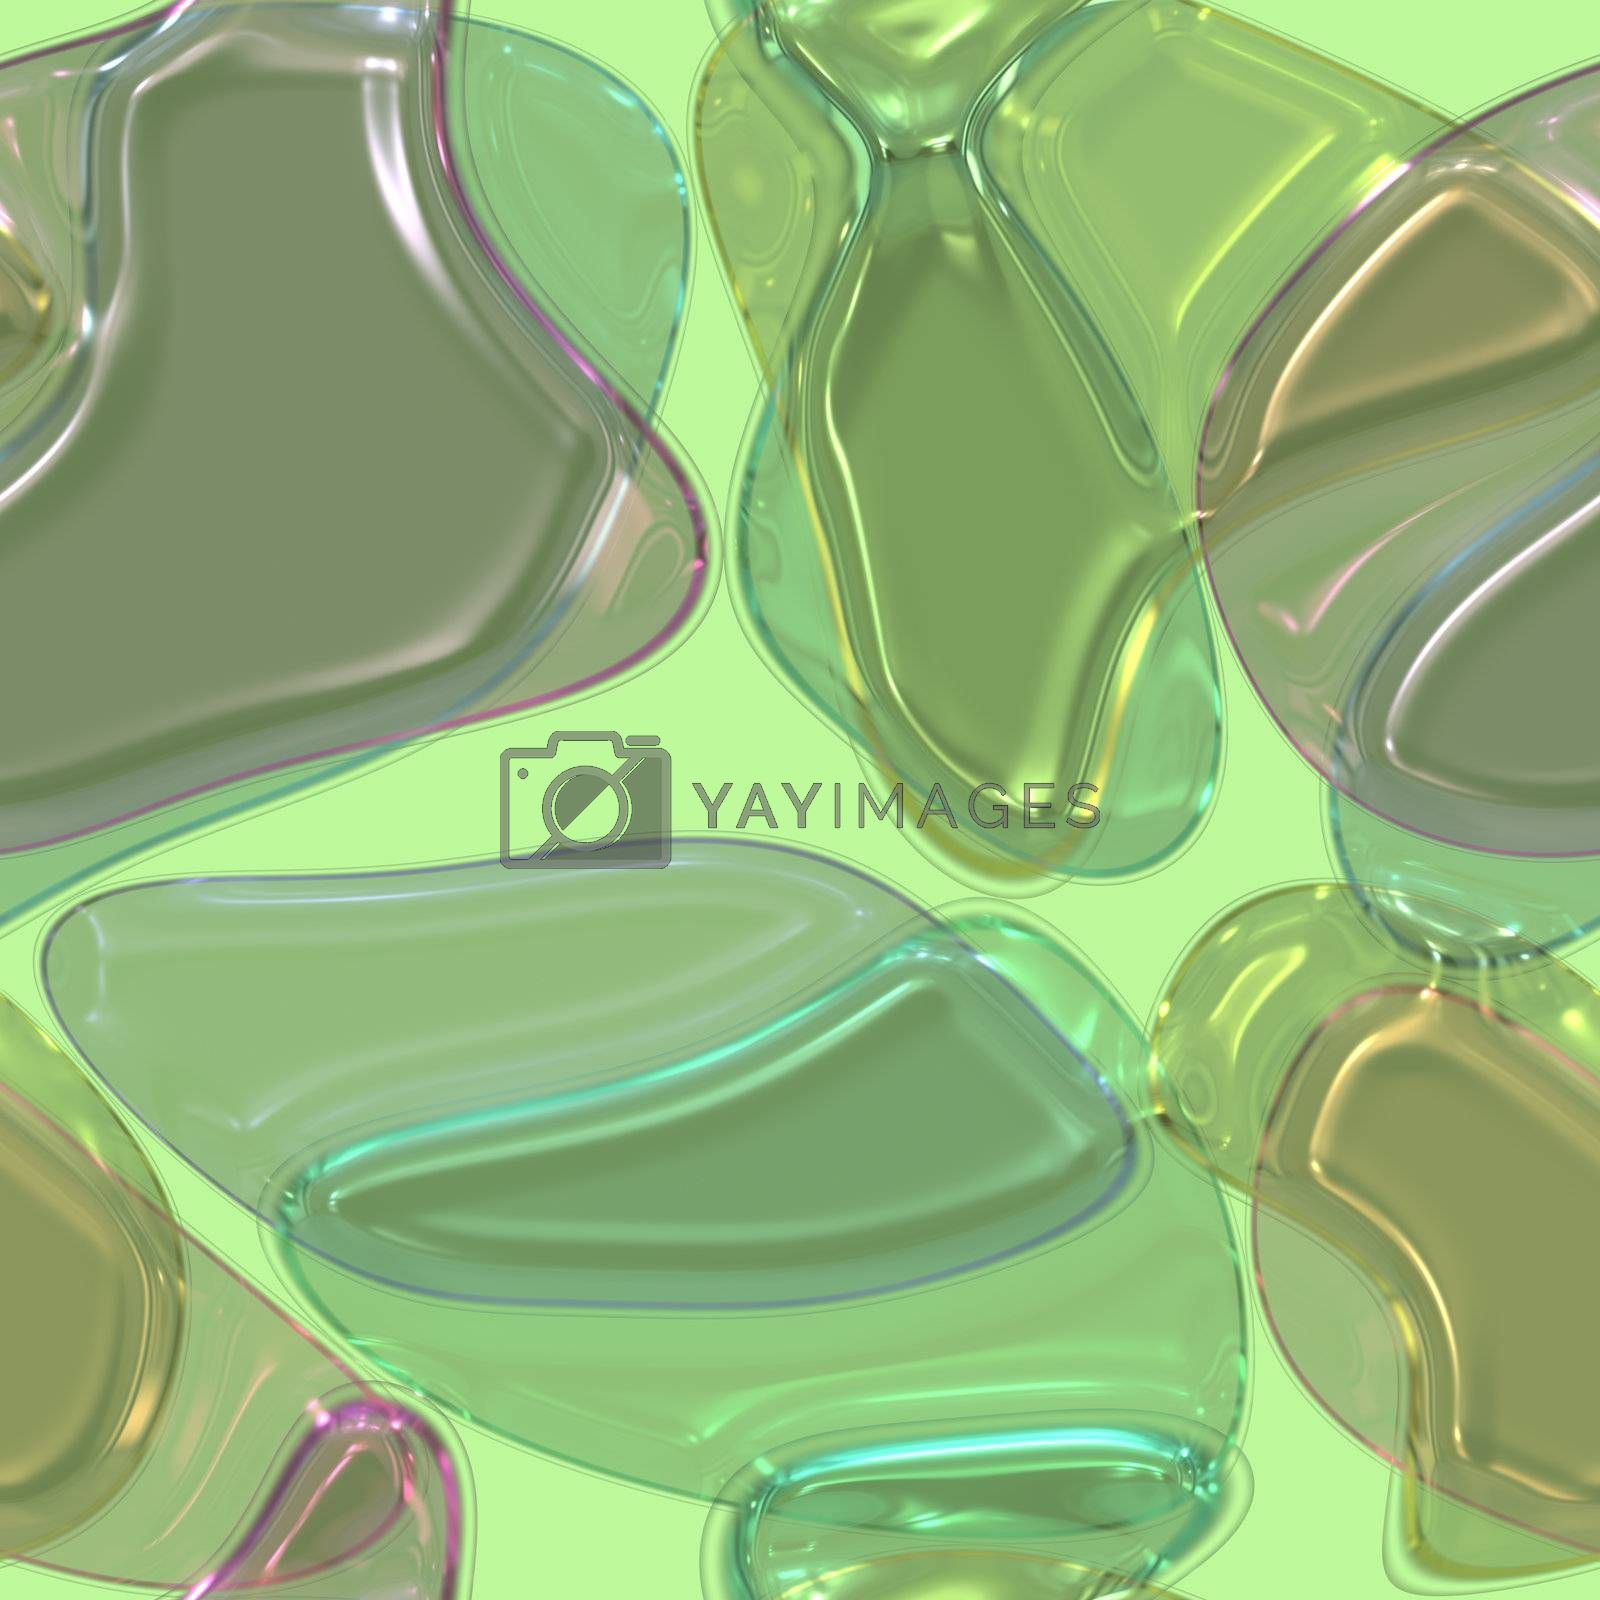 Colorful gel candy glass shapes abstract background texture pattern